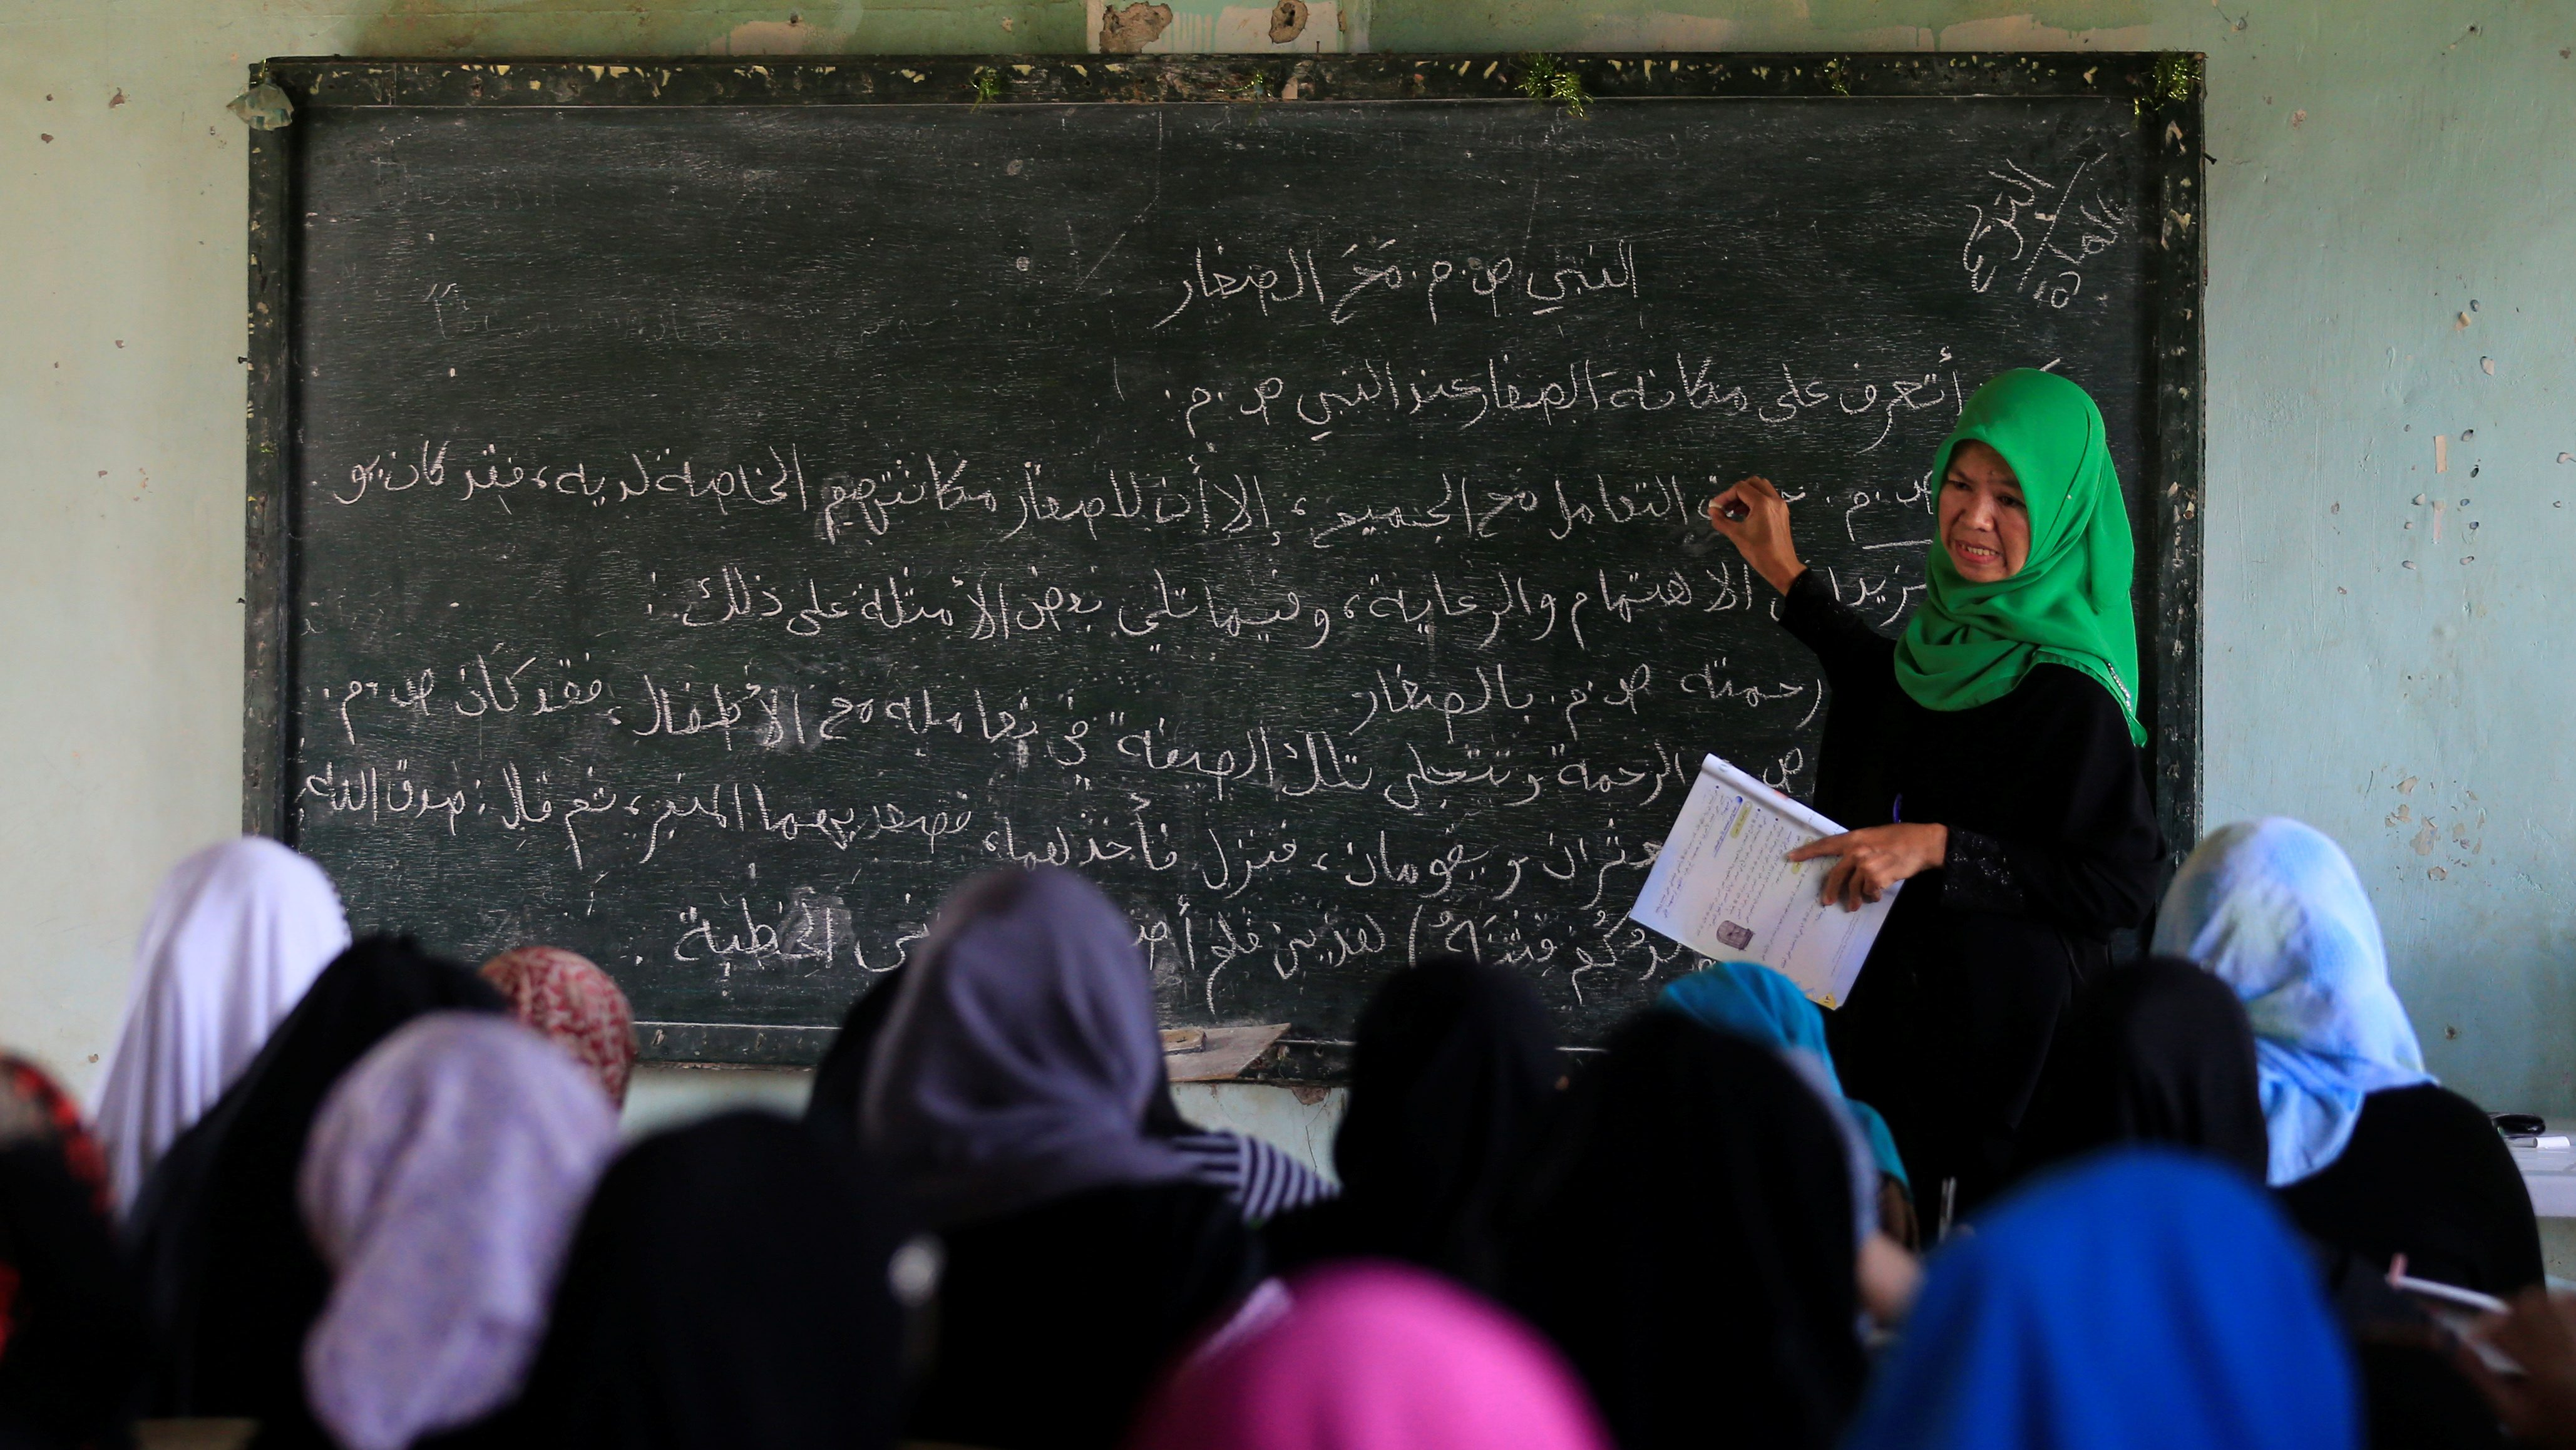 A teacher teaches Arabic language to Muslim students inside a classroom at Al-Markazie islamic institute in Balo-i town, Lanao Del Norte, southern Philippines, September 9, 2017. Picture taken September 9, 2017.